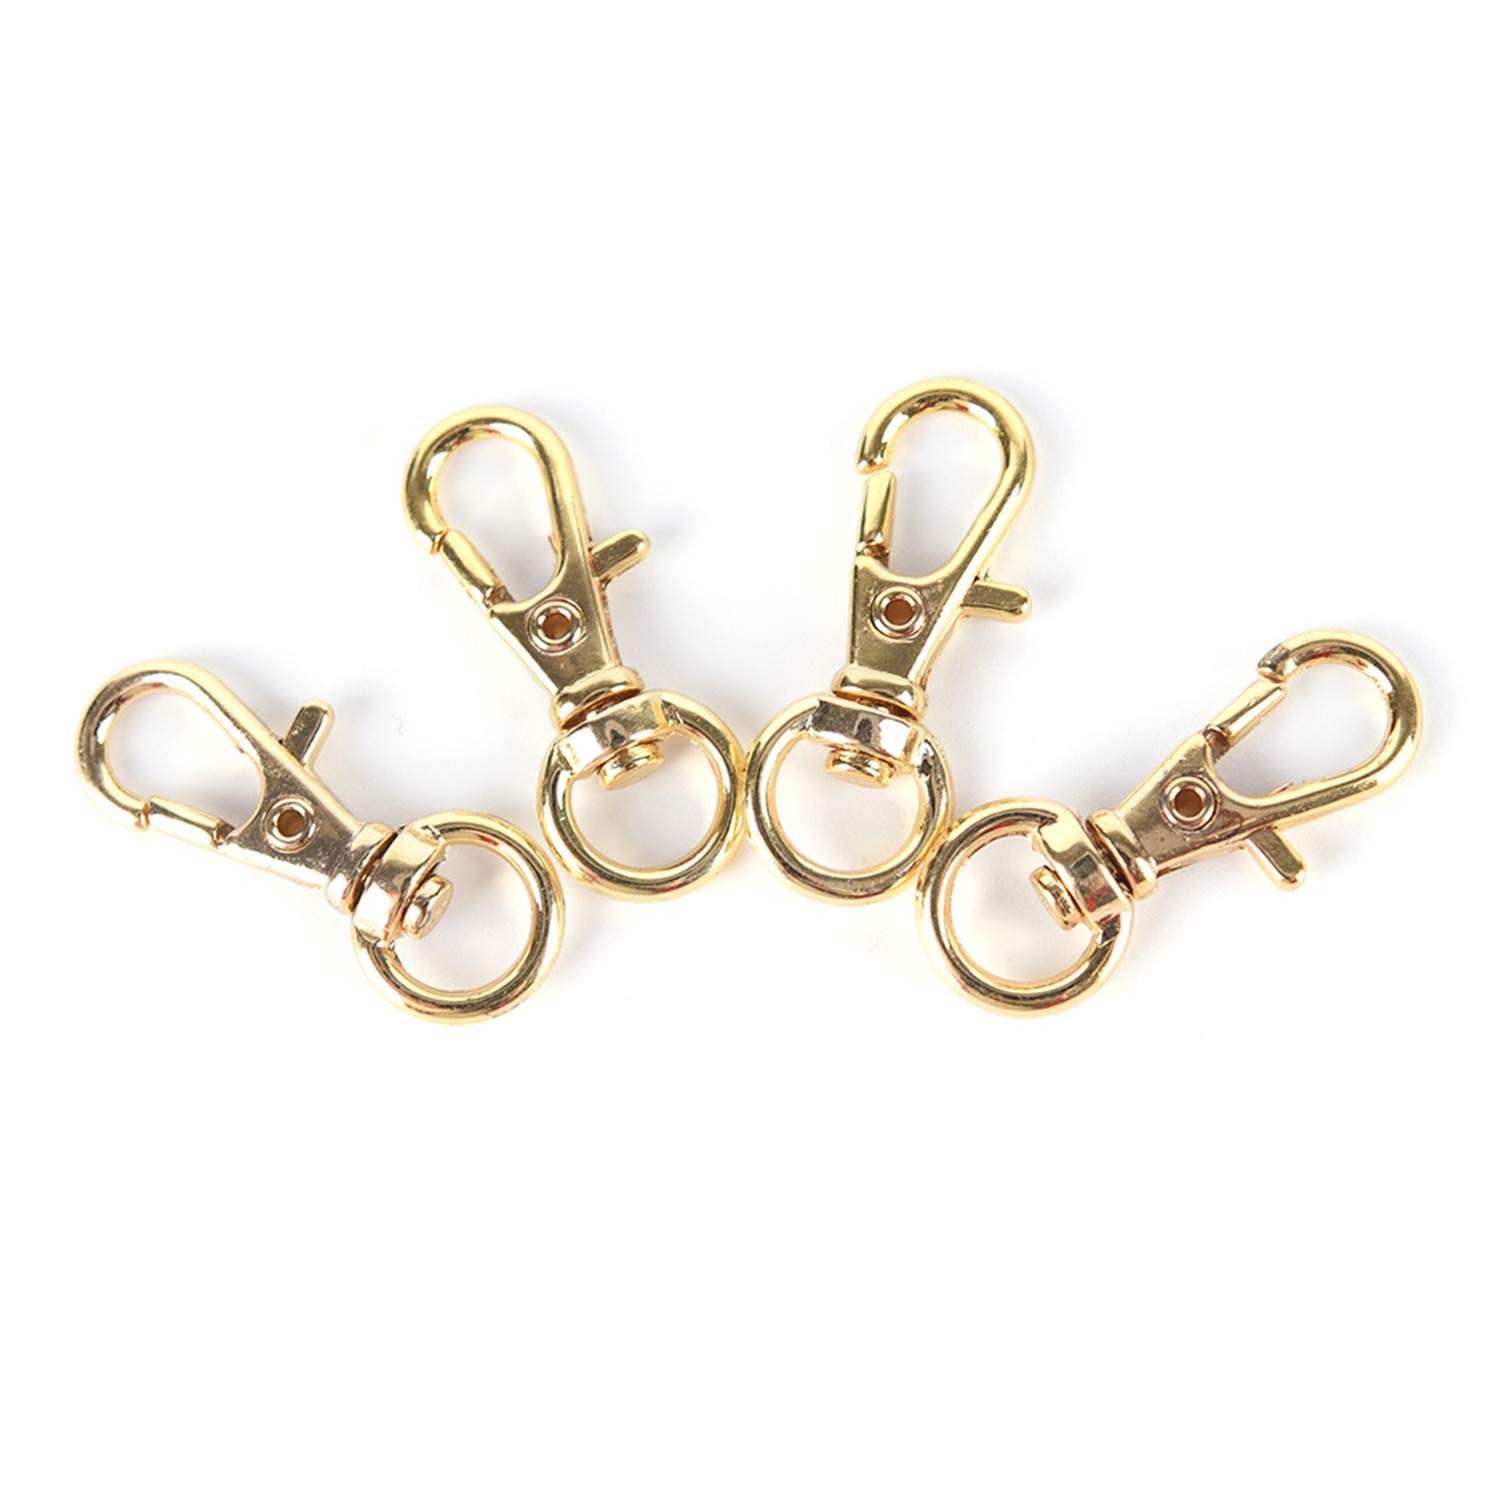 Hulione 10Pcs Mini Rotatable Buckle Hook Lobster Key Chain Metal Carabiner For,Sliver,Onesize